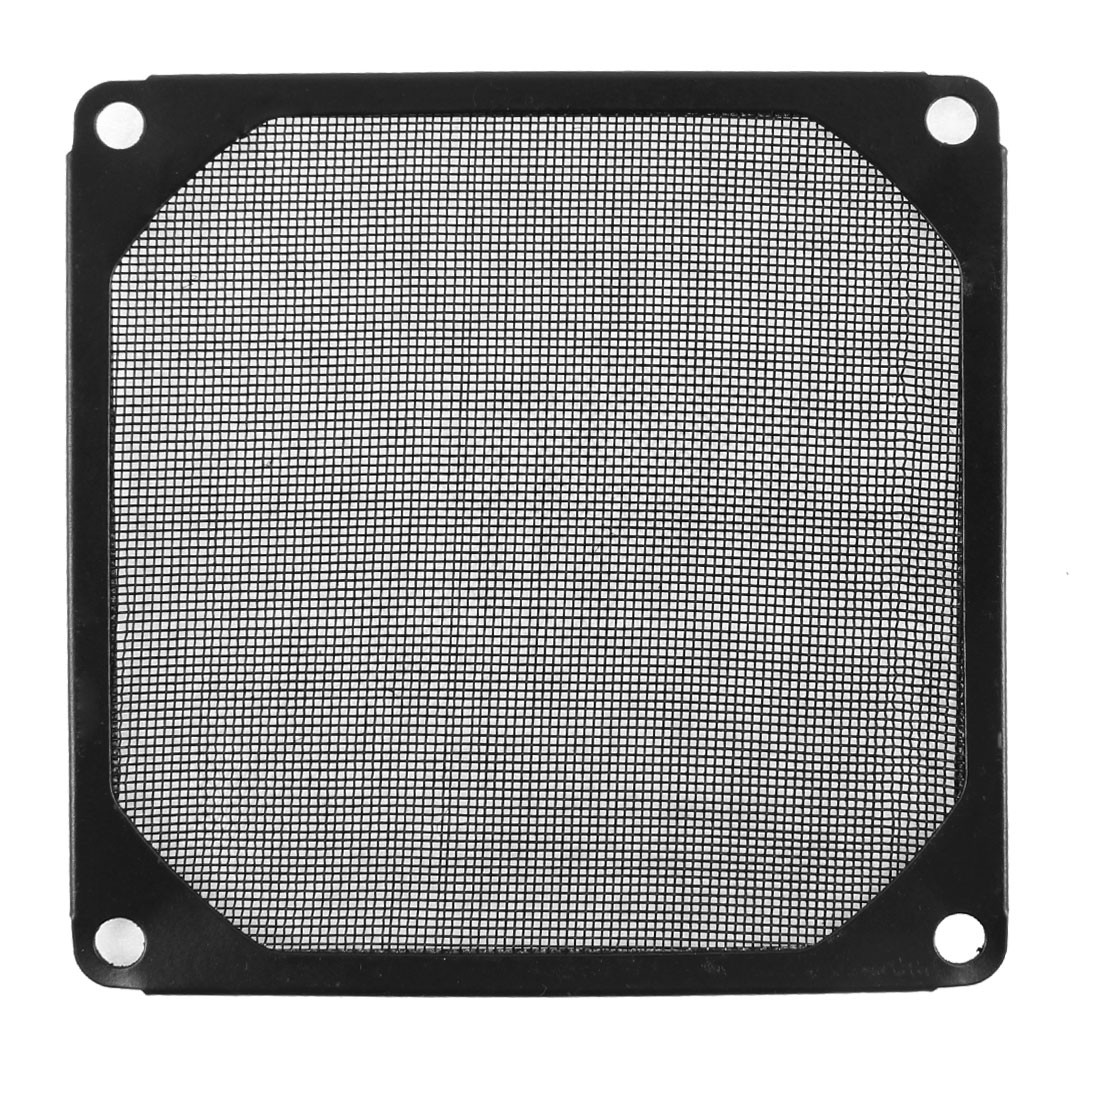 93mm x 93mm Computer PC Dustproof Cooler Fan Case Cover Dust Filter Mesh Black